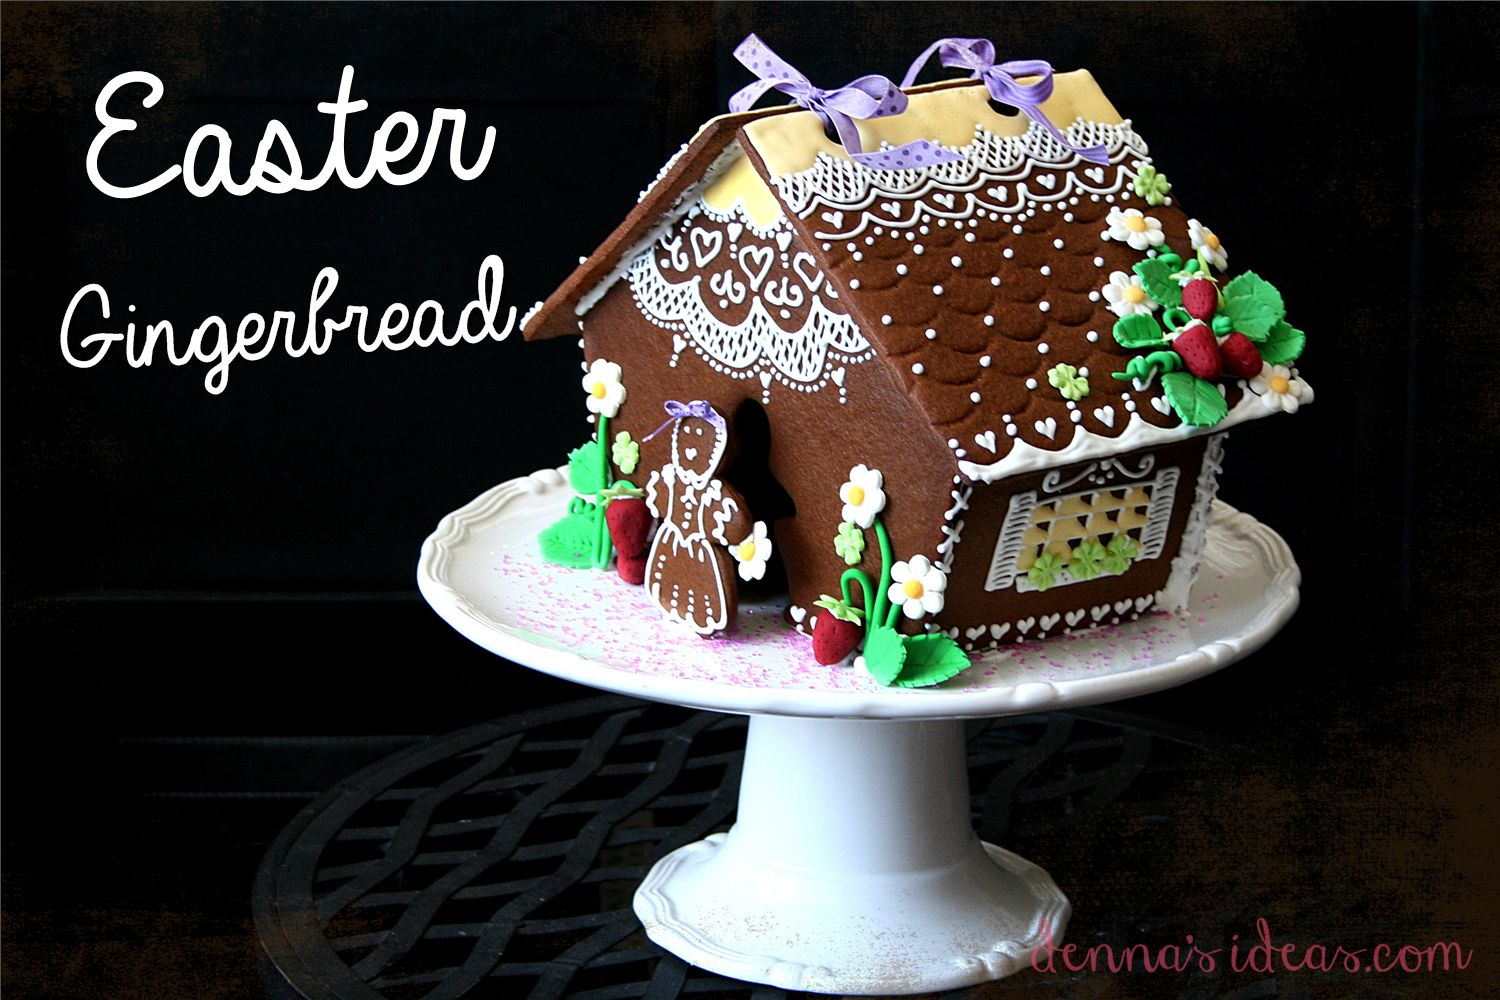 A Gingerbread House for Spring denna 39 s ideas